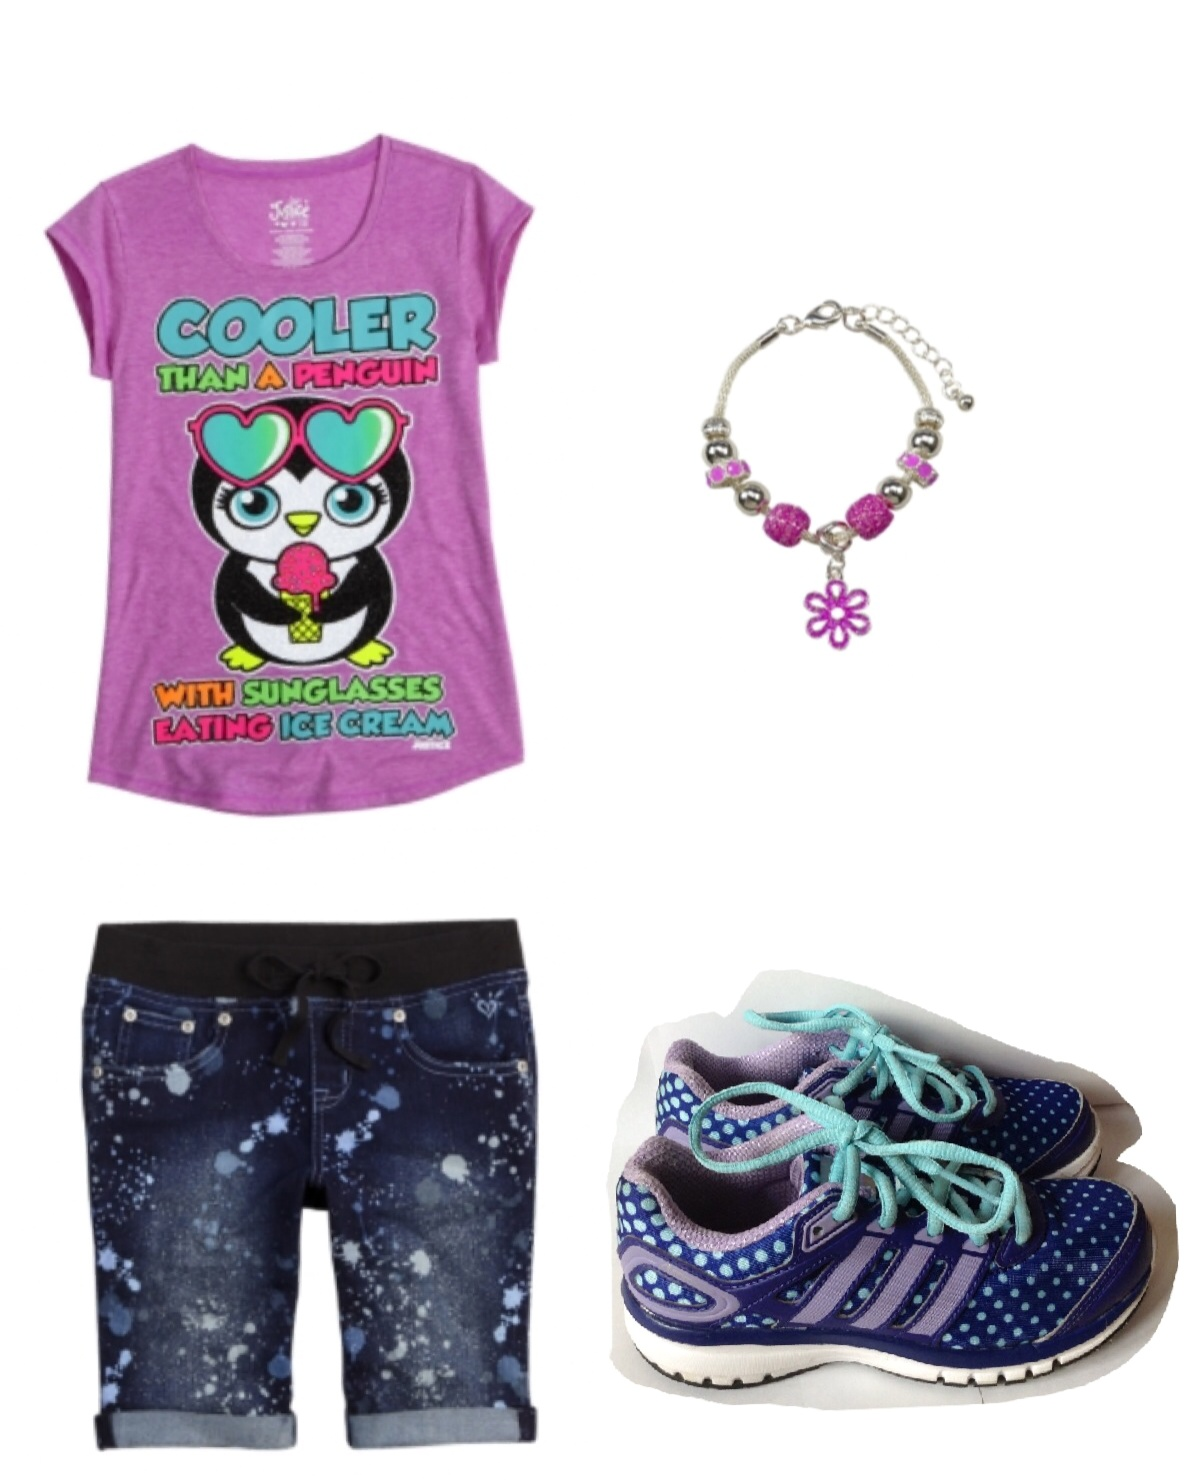 Nike Shoe Outfits For School